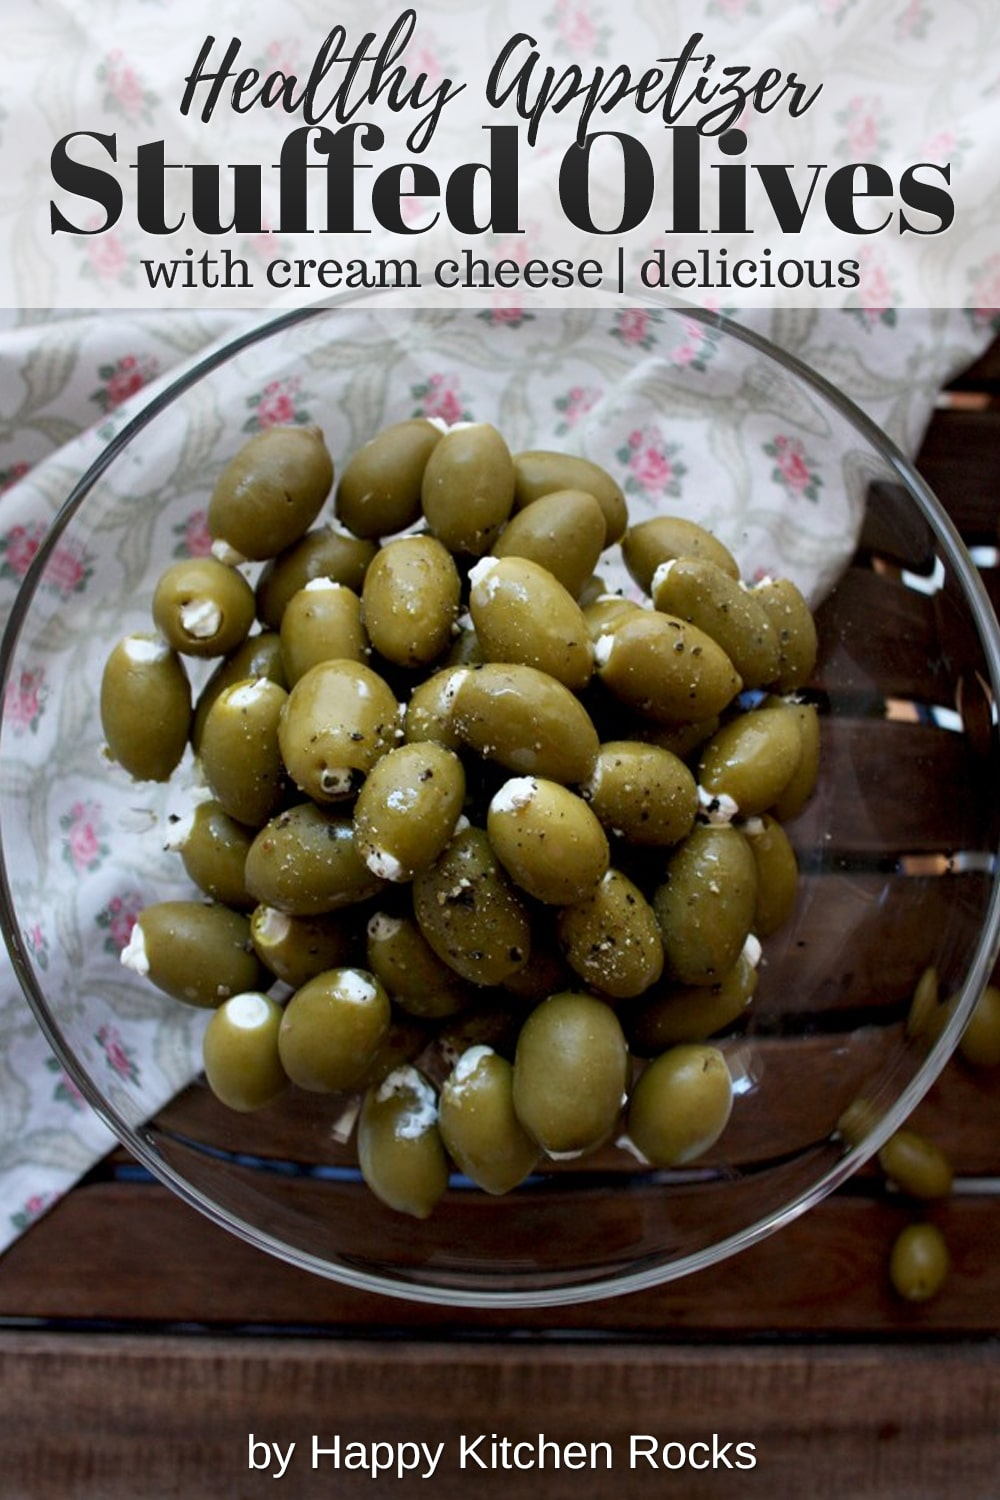 Cream Cheese Stuffed Olives Collage with Text Overlay